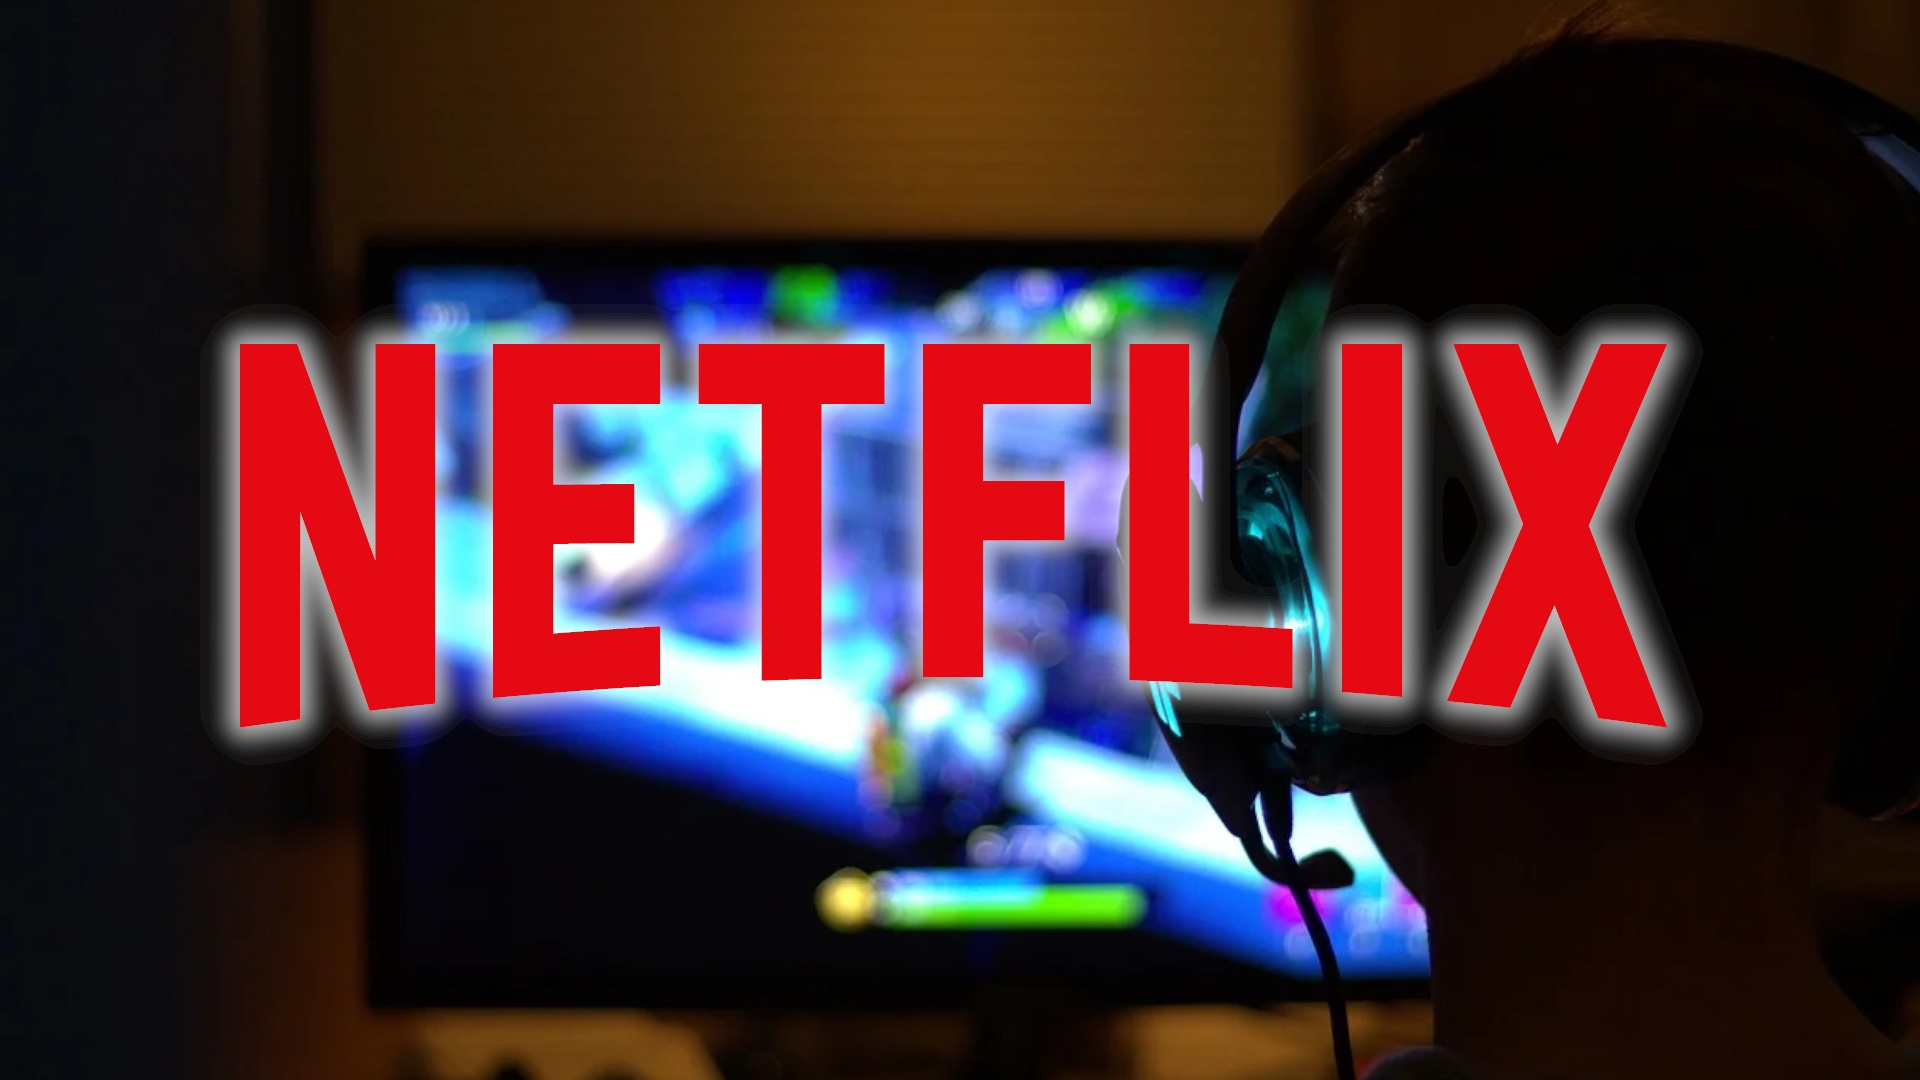 You will also get video games on subscription on Netflix in 2022